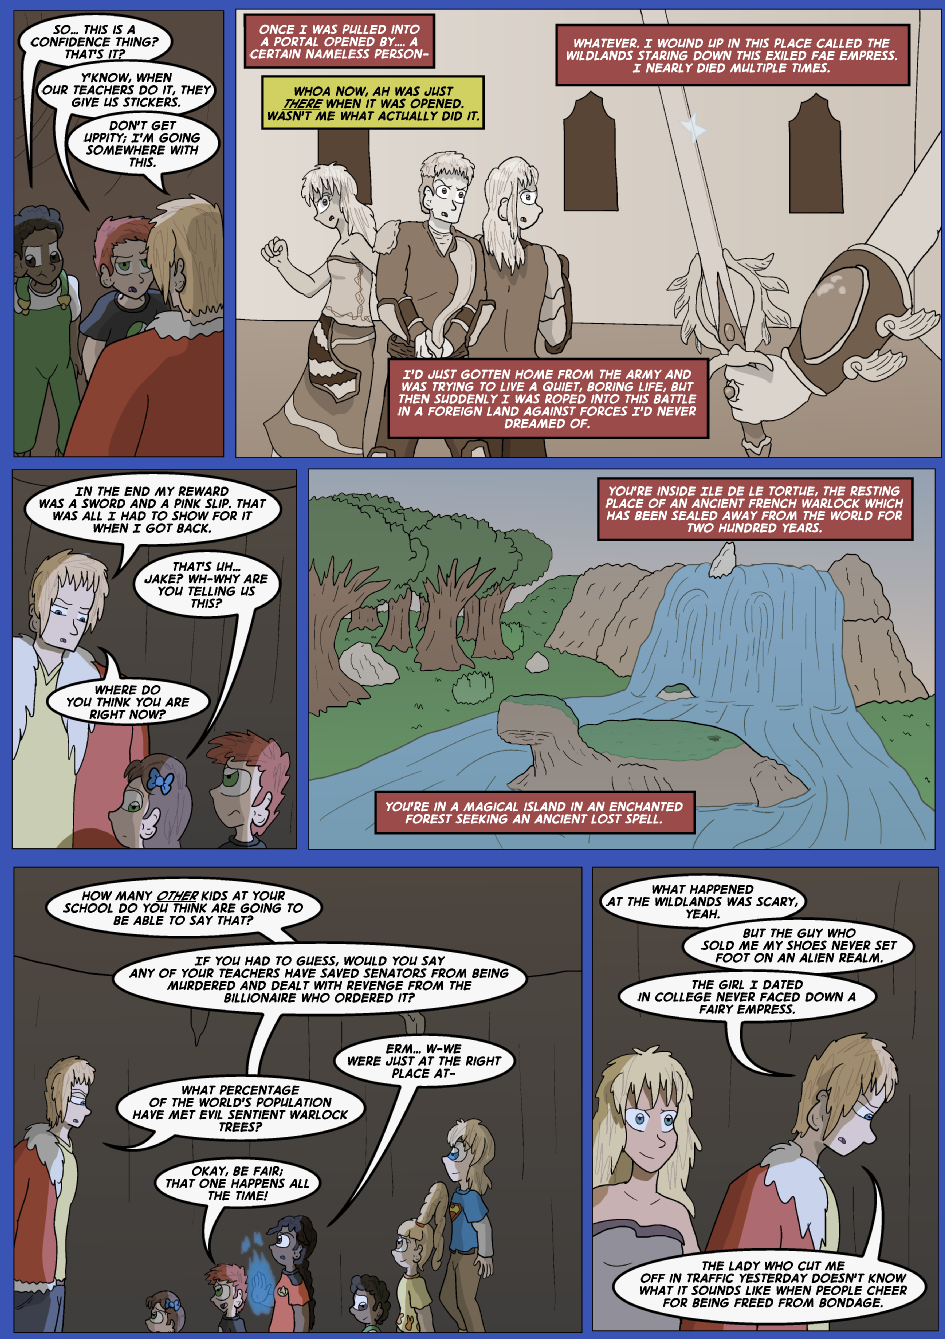 The Lost Spell of Baron Fontainebleu, Page 23